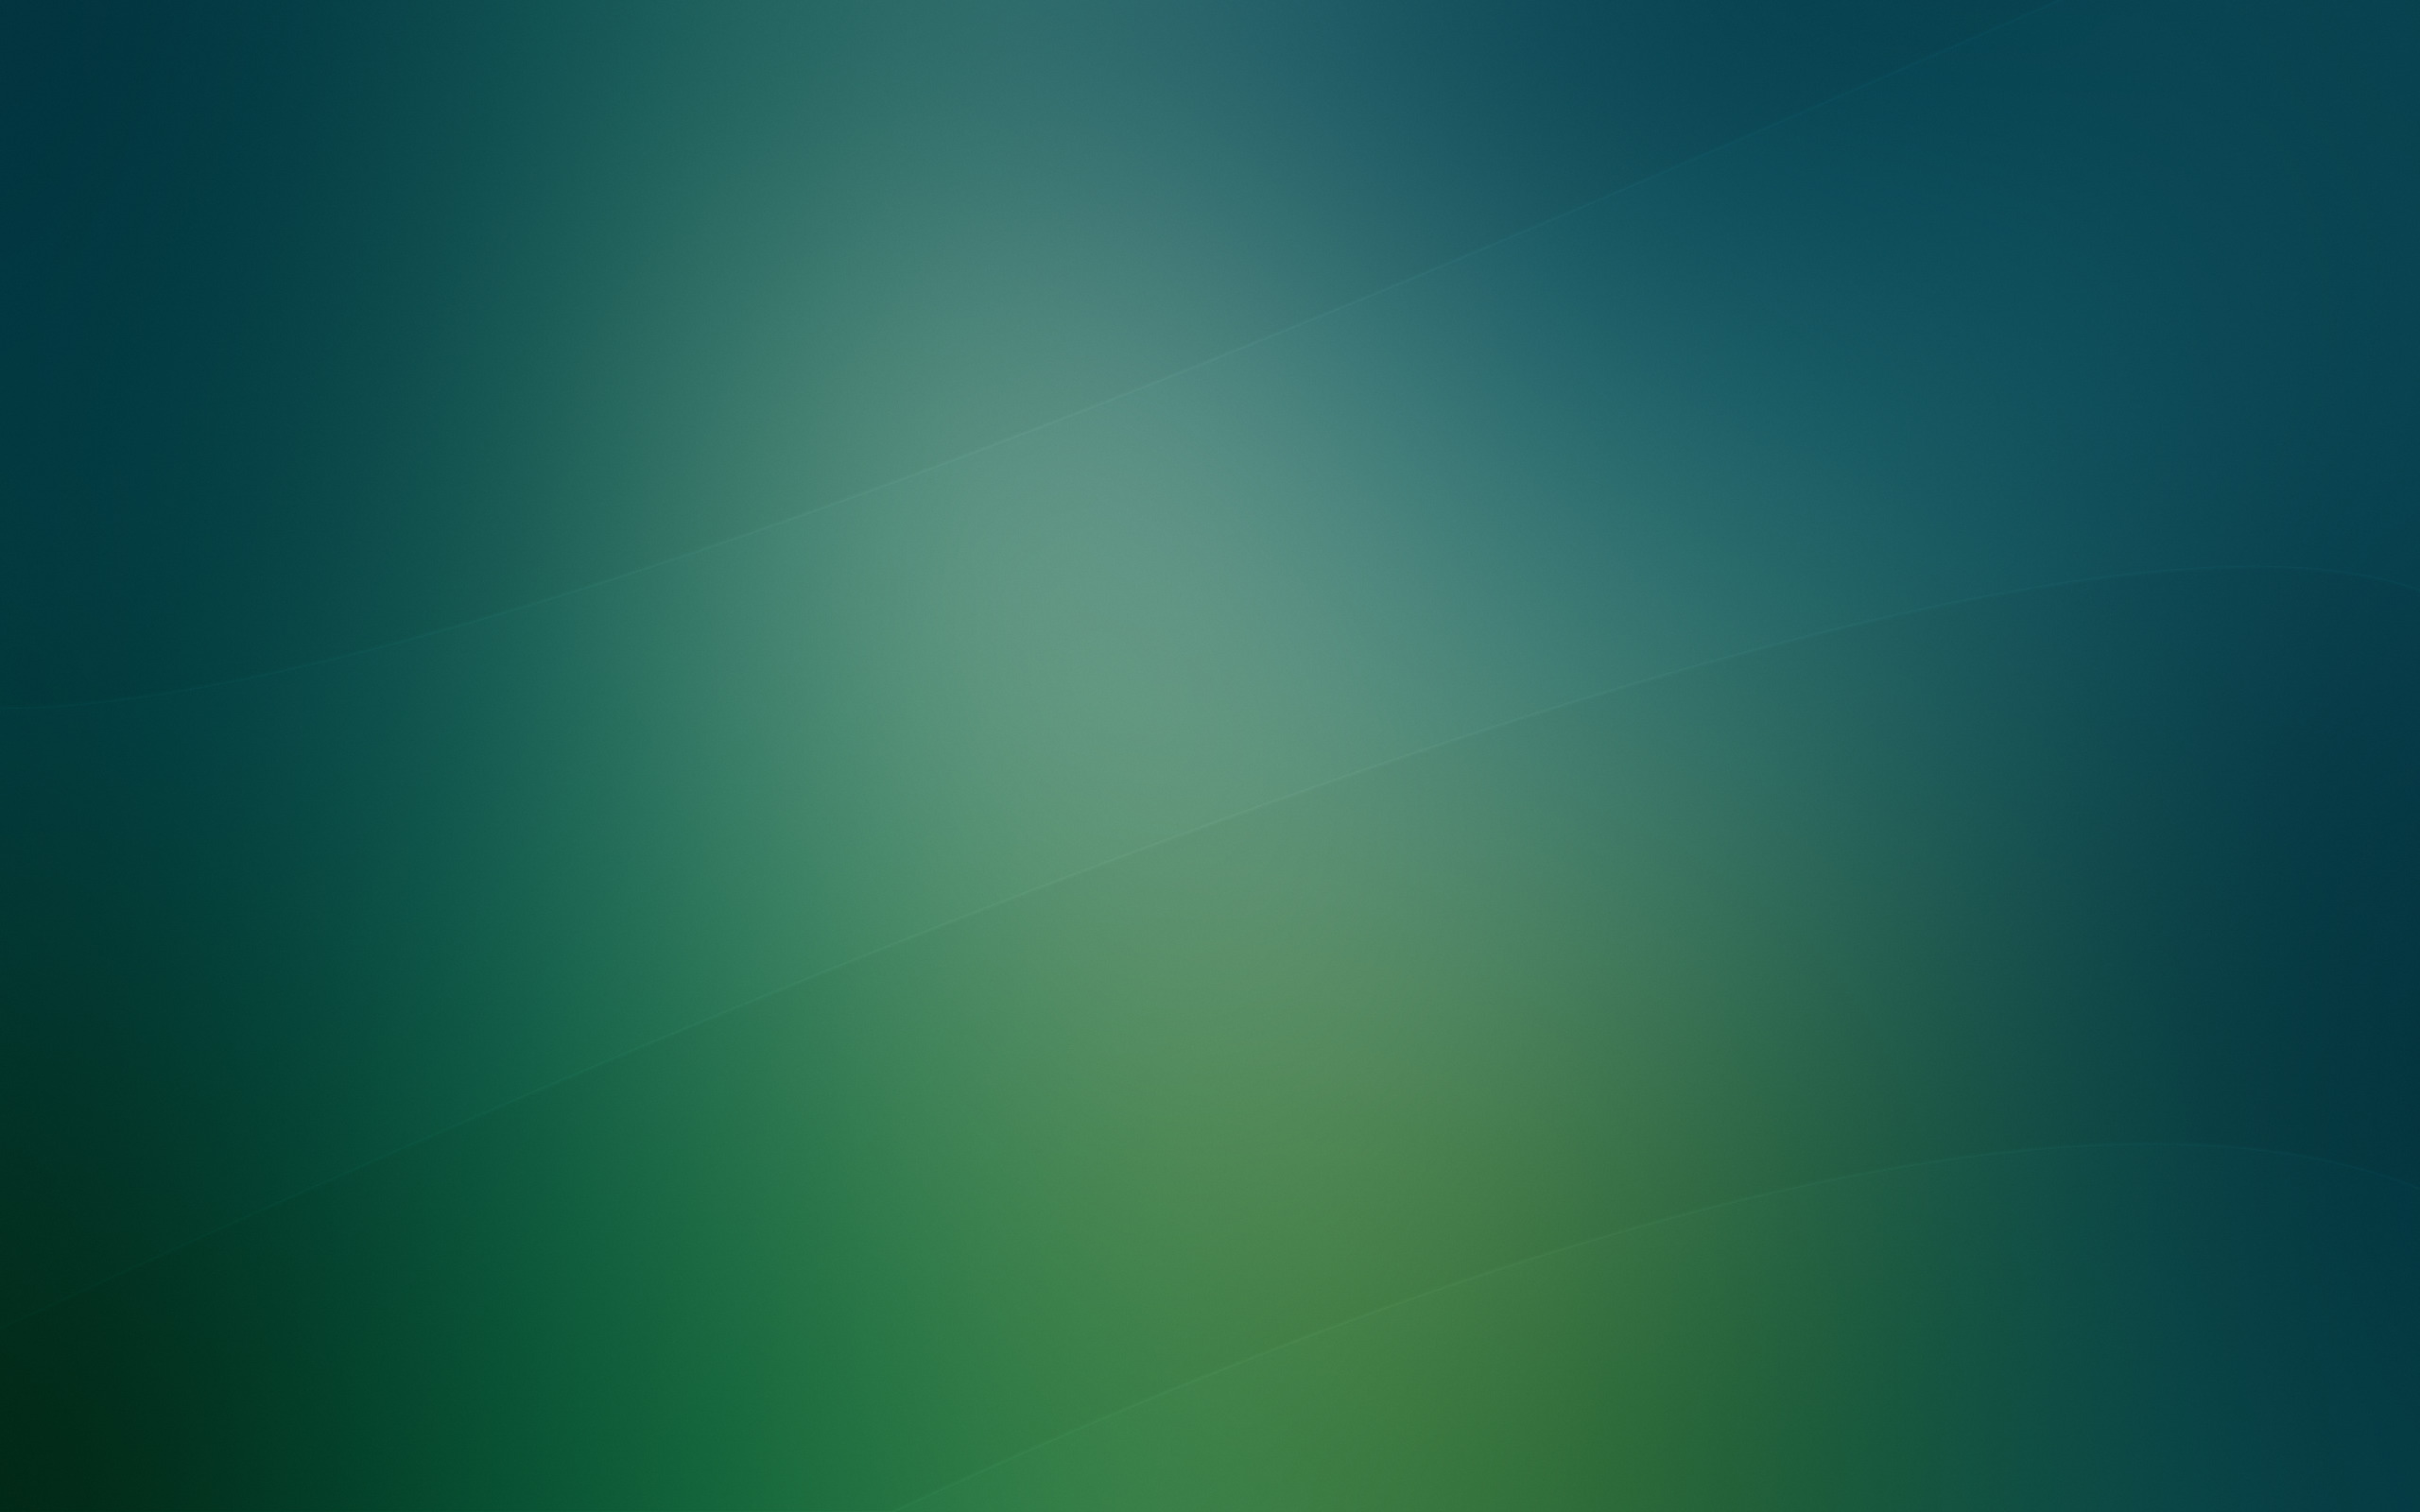 abstract gaussian Blur HD Wallpaper